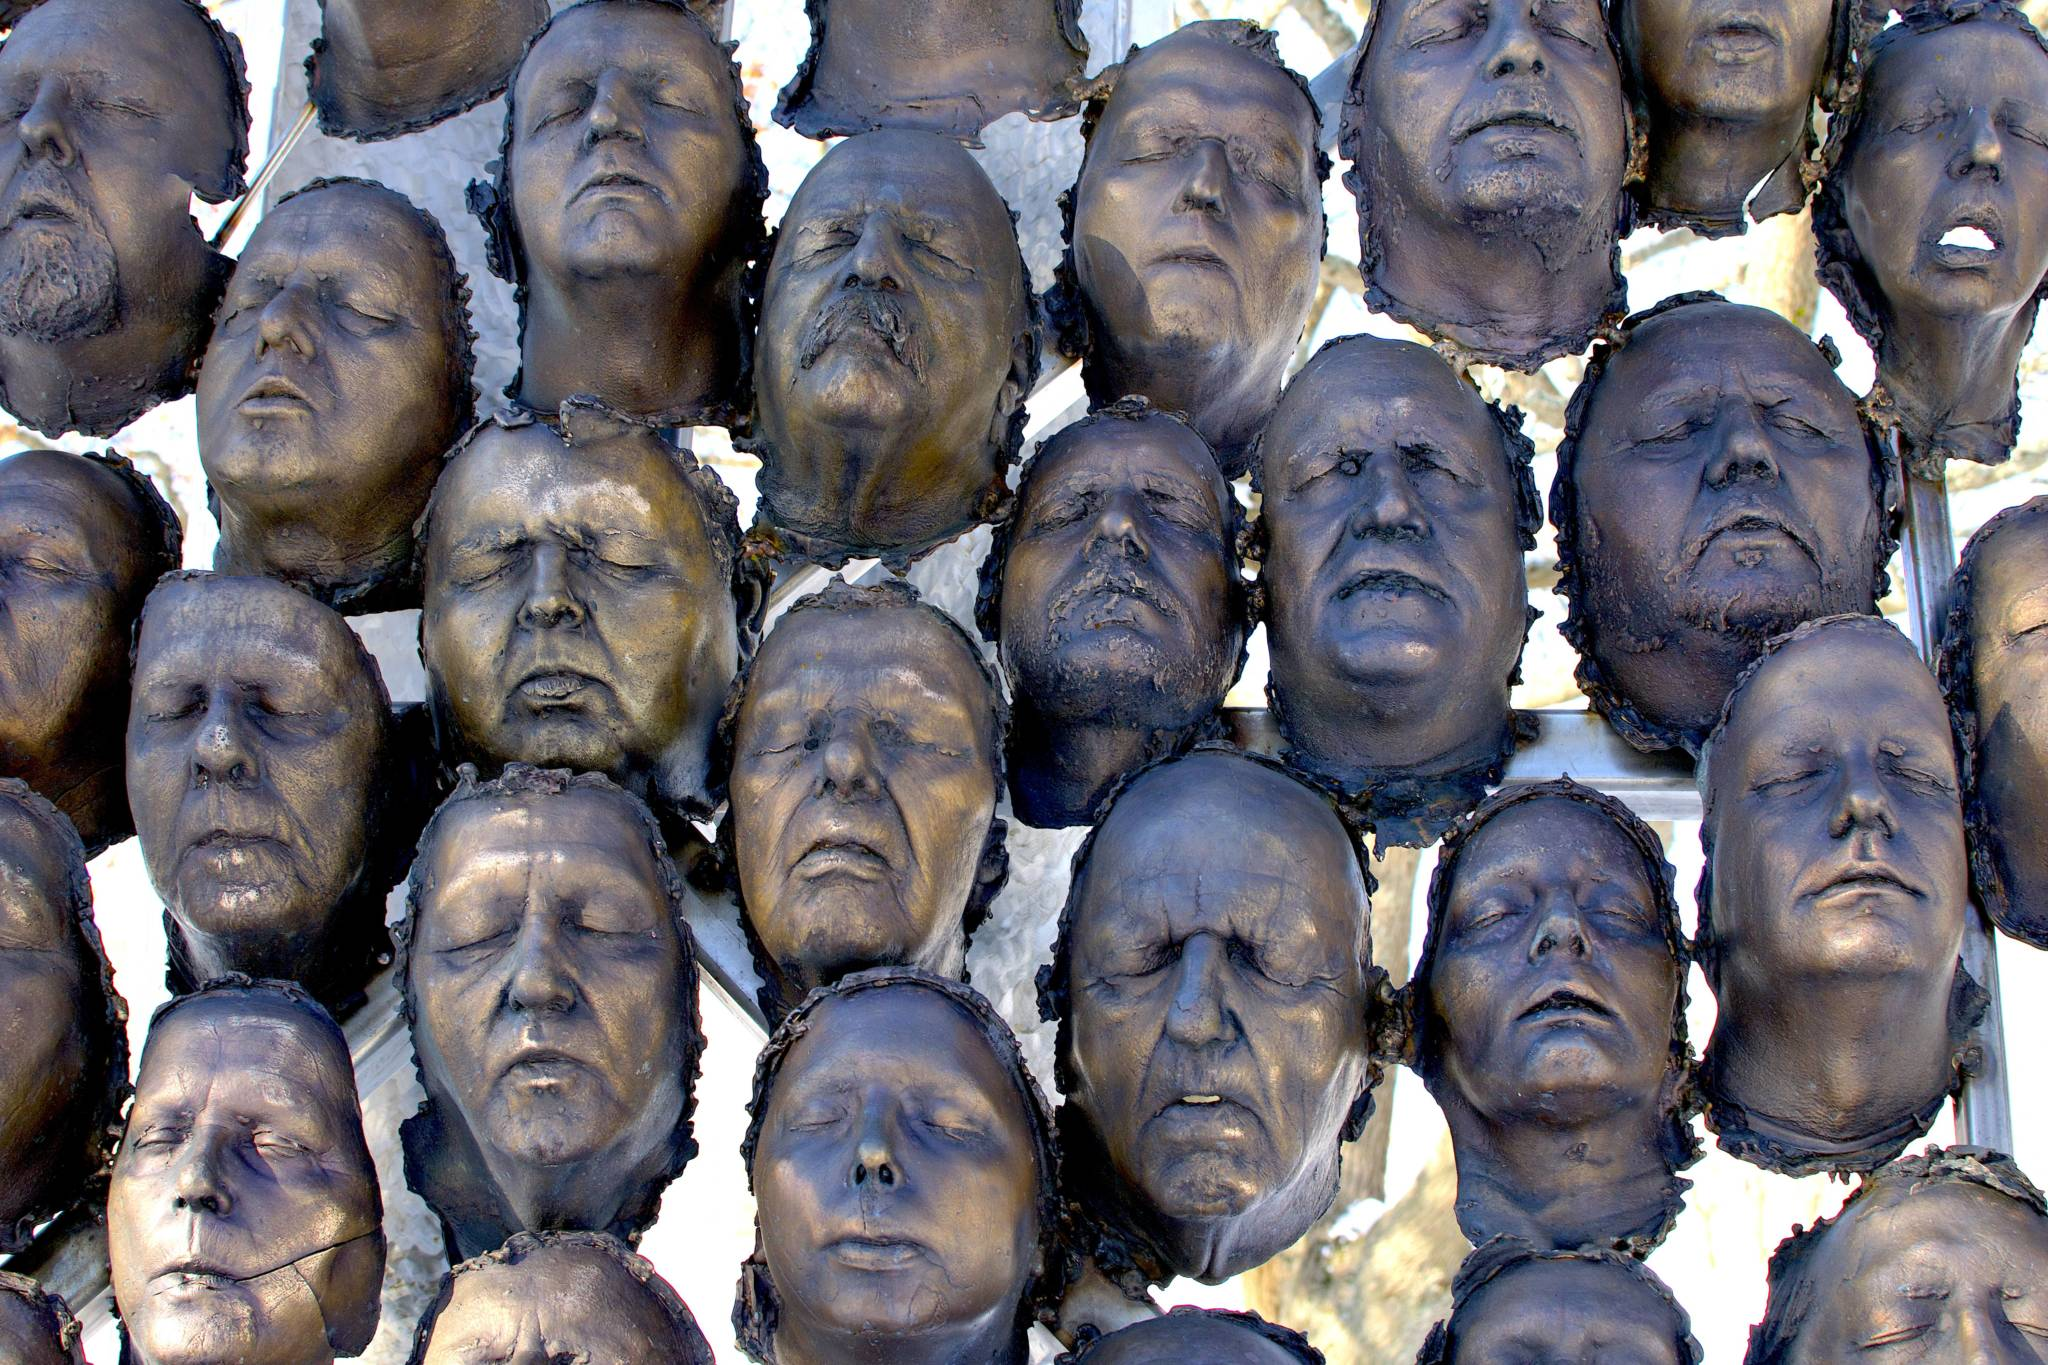 100 Bronze-cast Faces to Commemorate the Centenary of Armistice 1